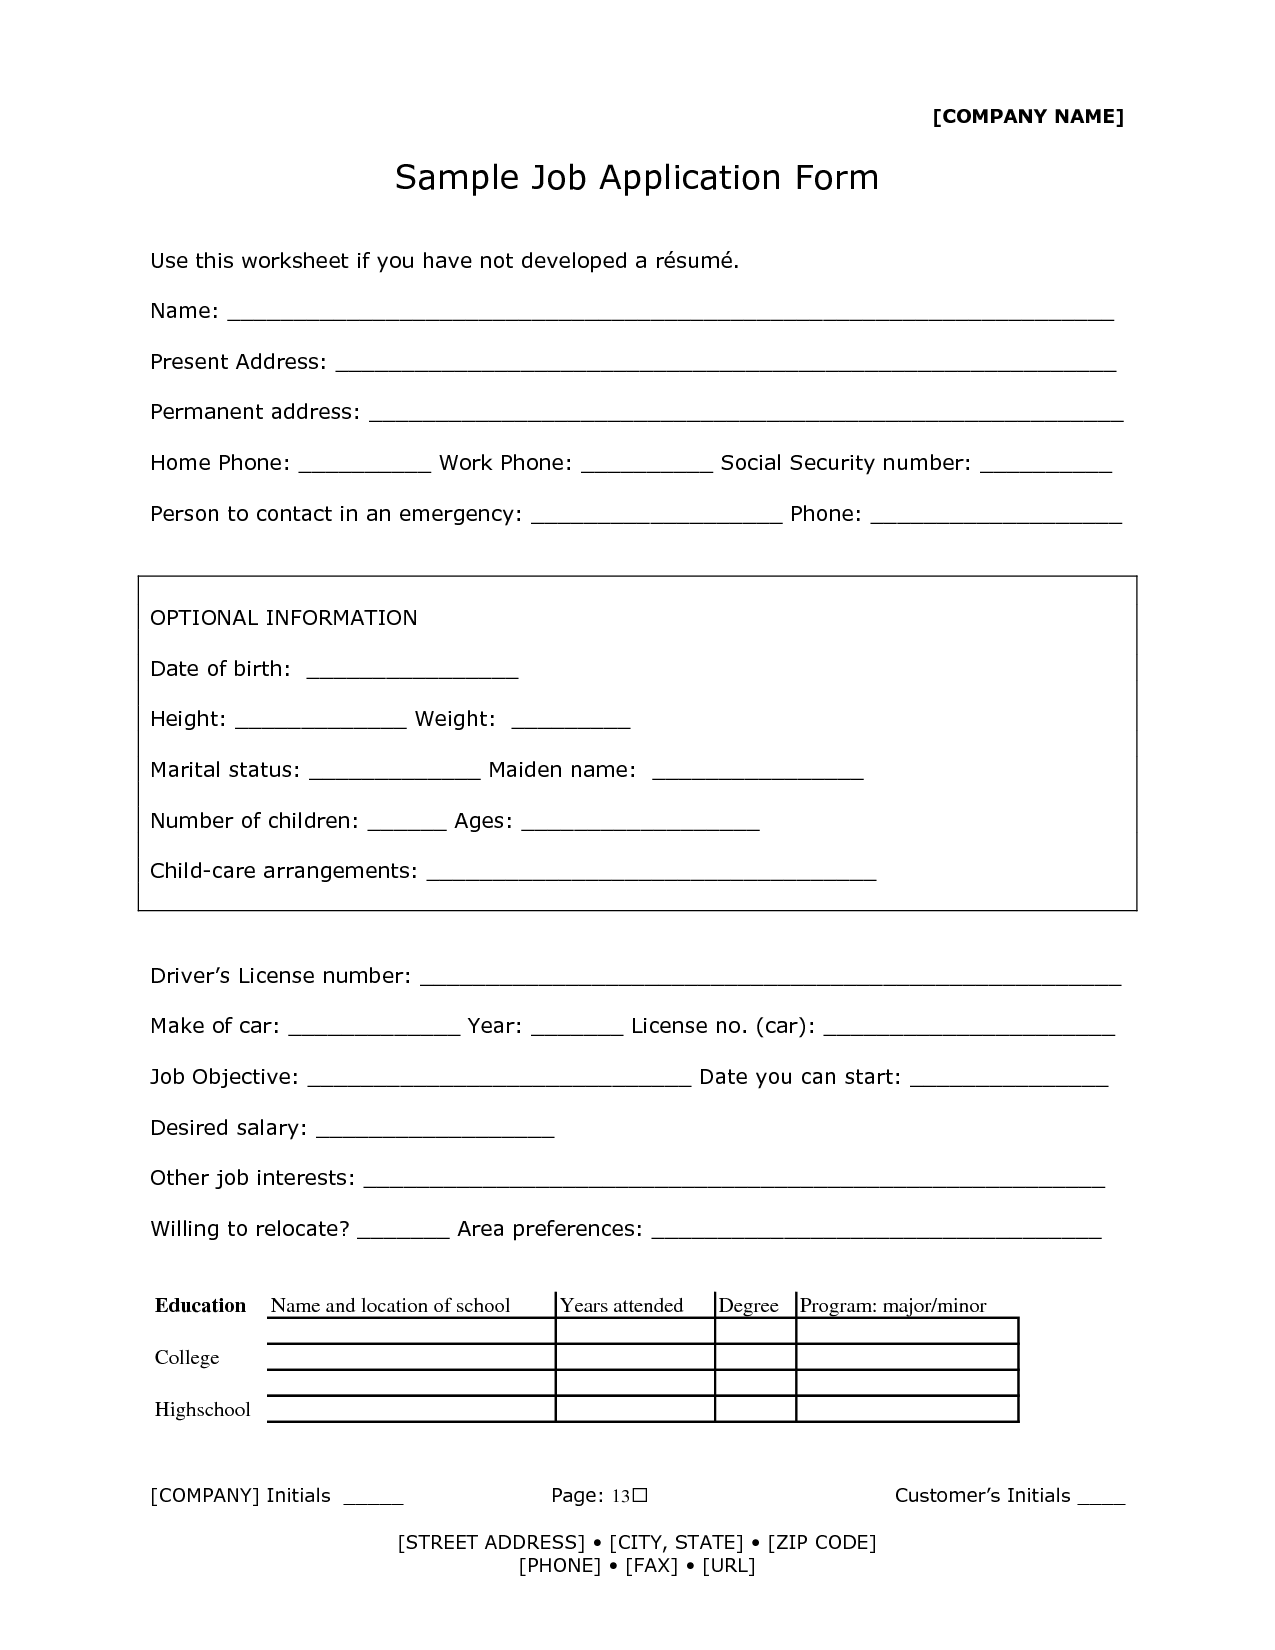 Sample of job leave application new leave application form for unique simple leave application pdf format survivalbooks us bunch ideas of leave application format for office sample pdf with extraordinary simple leave thecheapjerseys Gallery